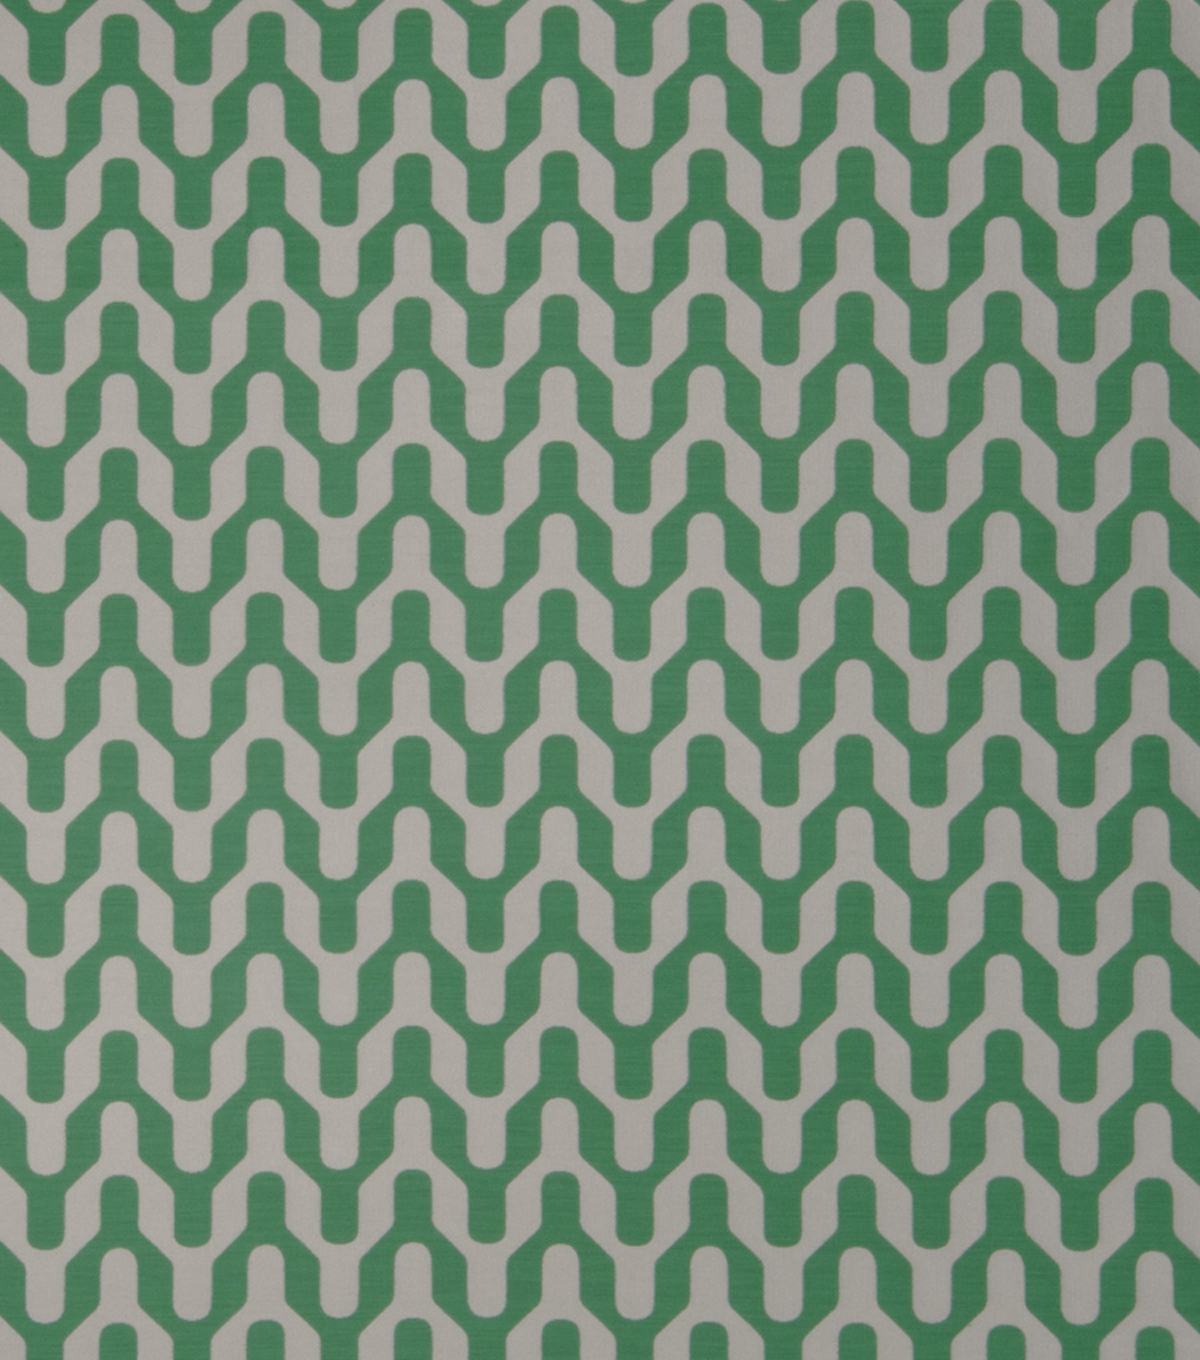 Home Decor 8\u0022x8\u0022 Fabric Swatch-Eaton Square Auction / Jade